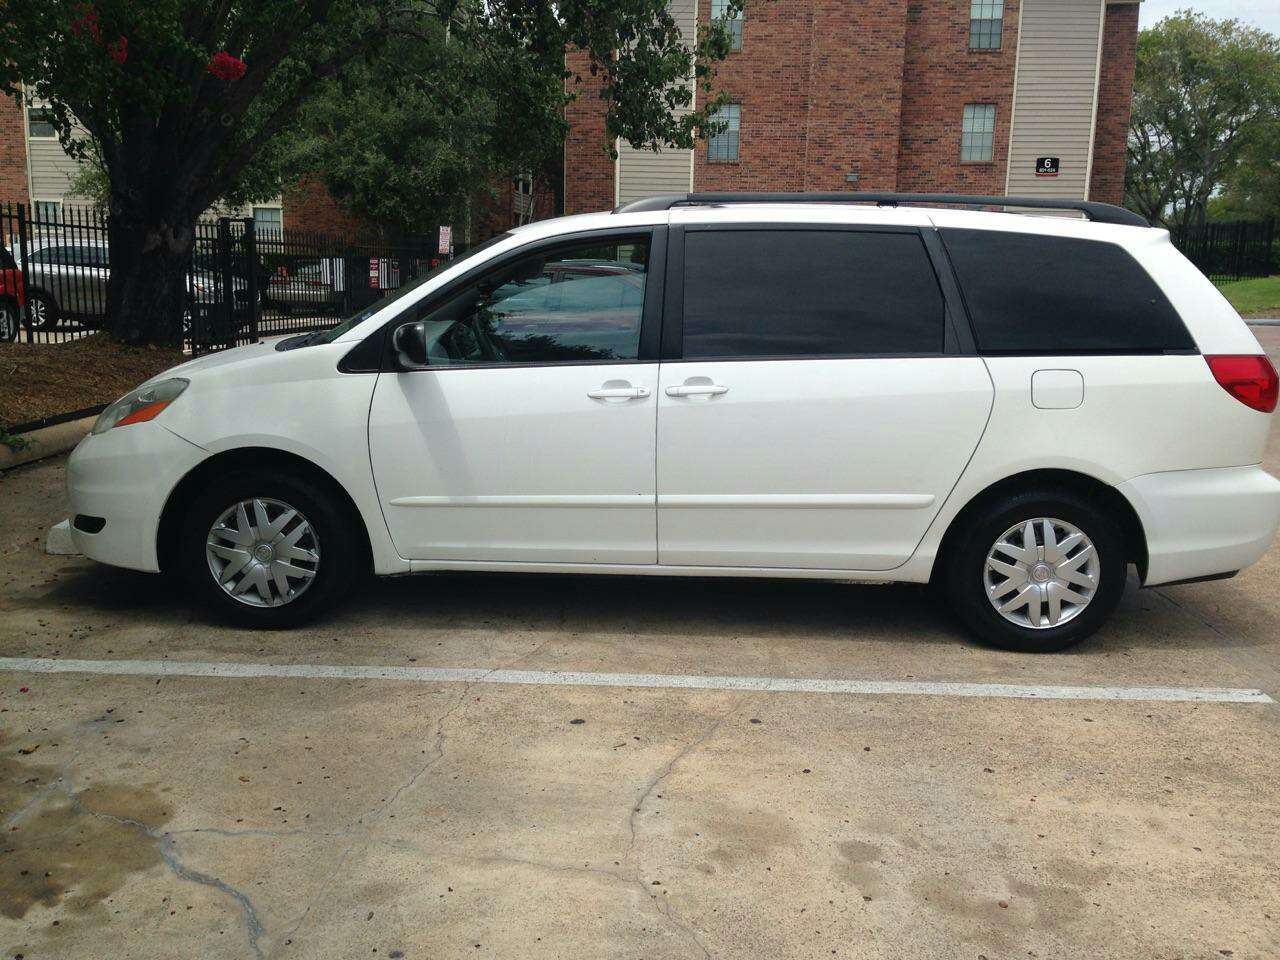 2008 Sienna Towing Capacity >> letgo - 2008 Toyota sienna minivan su... in Sharpstown, TX